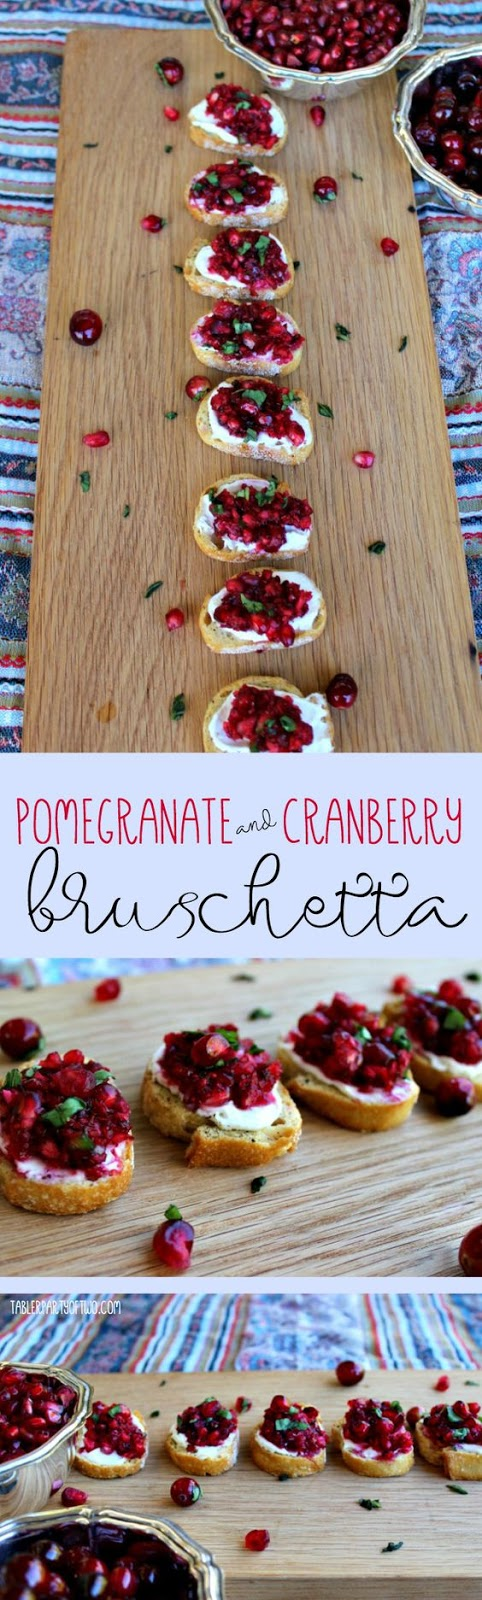 ★★★★☆ 4290 ratings    | Pomegranate and Cranberry Bruschetta #Pomegranate #Cranberry #Bruschetta #Fruit #Healthy